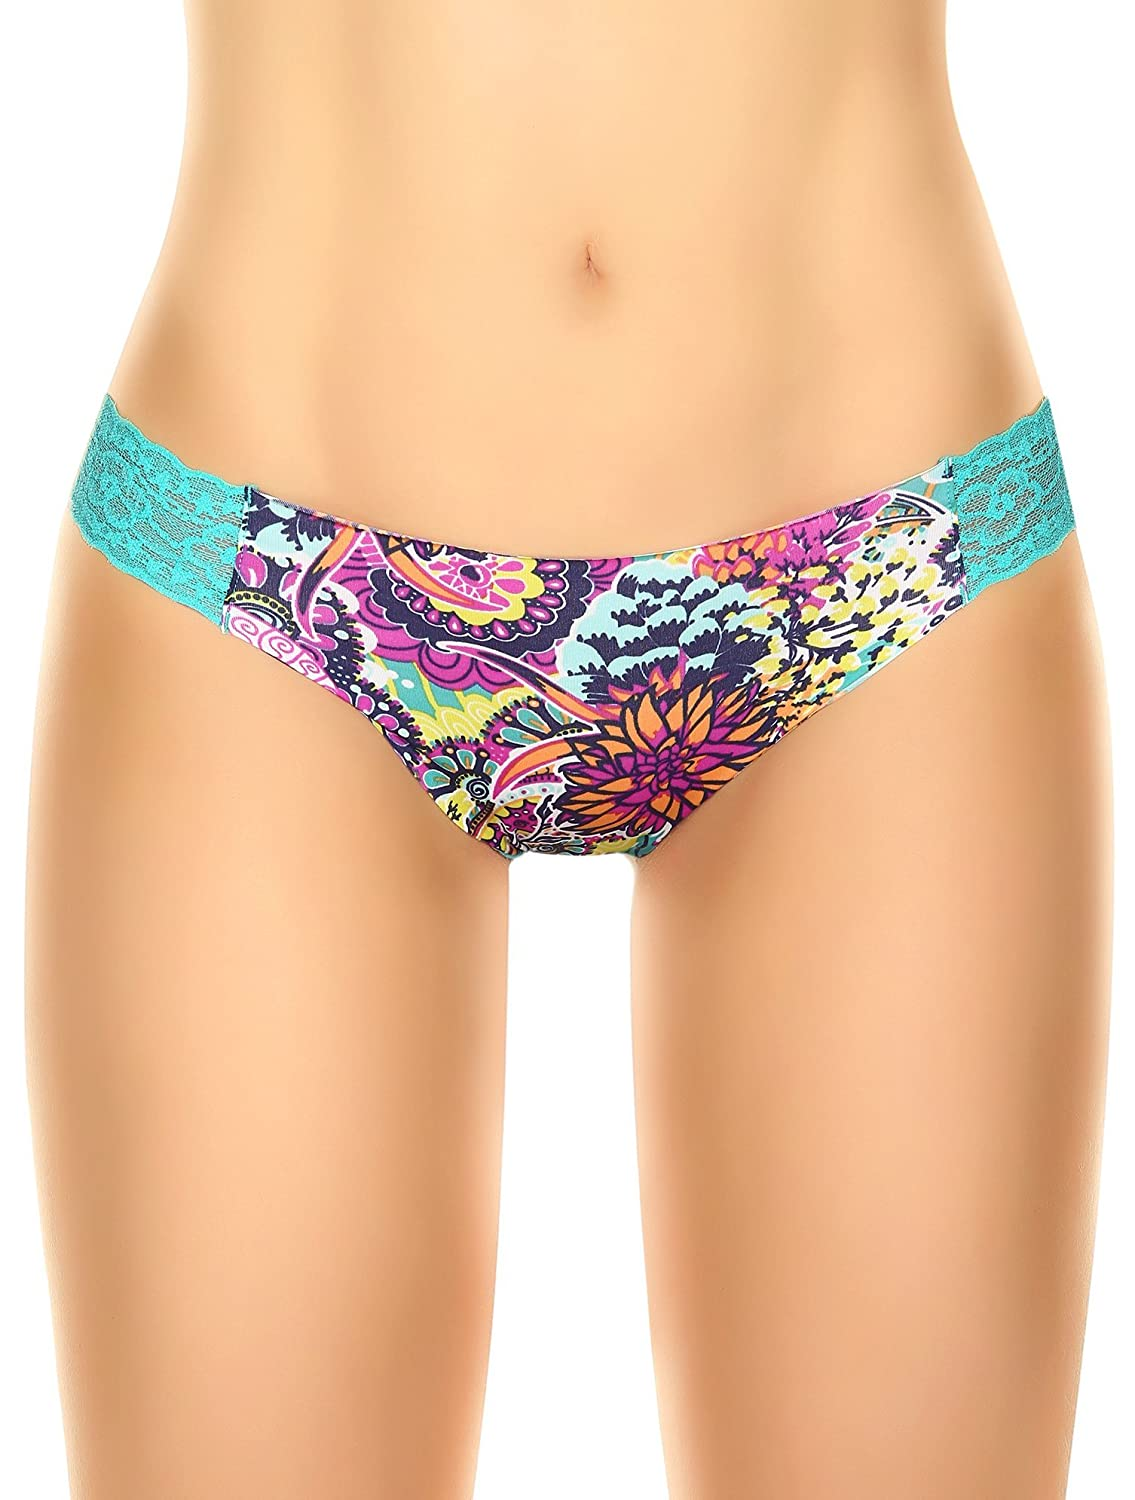 Laura Women's Raw Cut Edge Thong Lace Sides Abstract Flower Prints